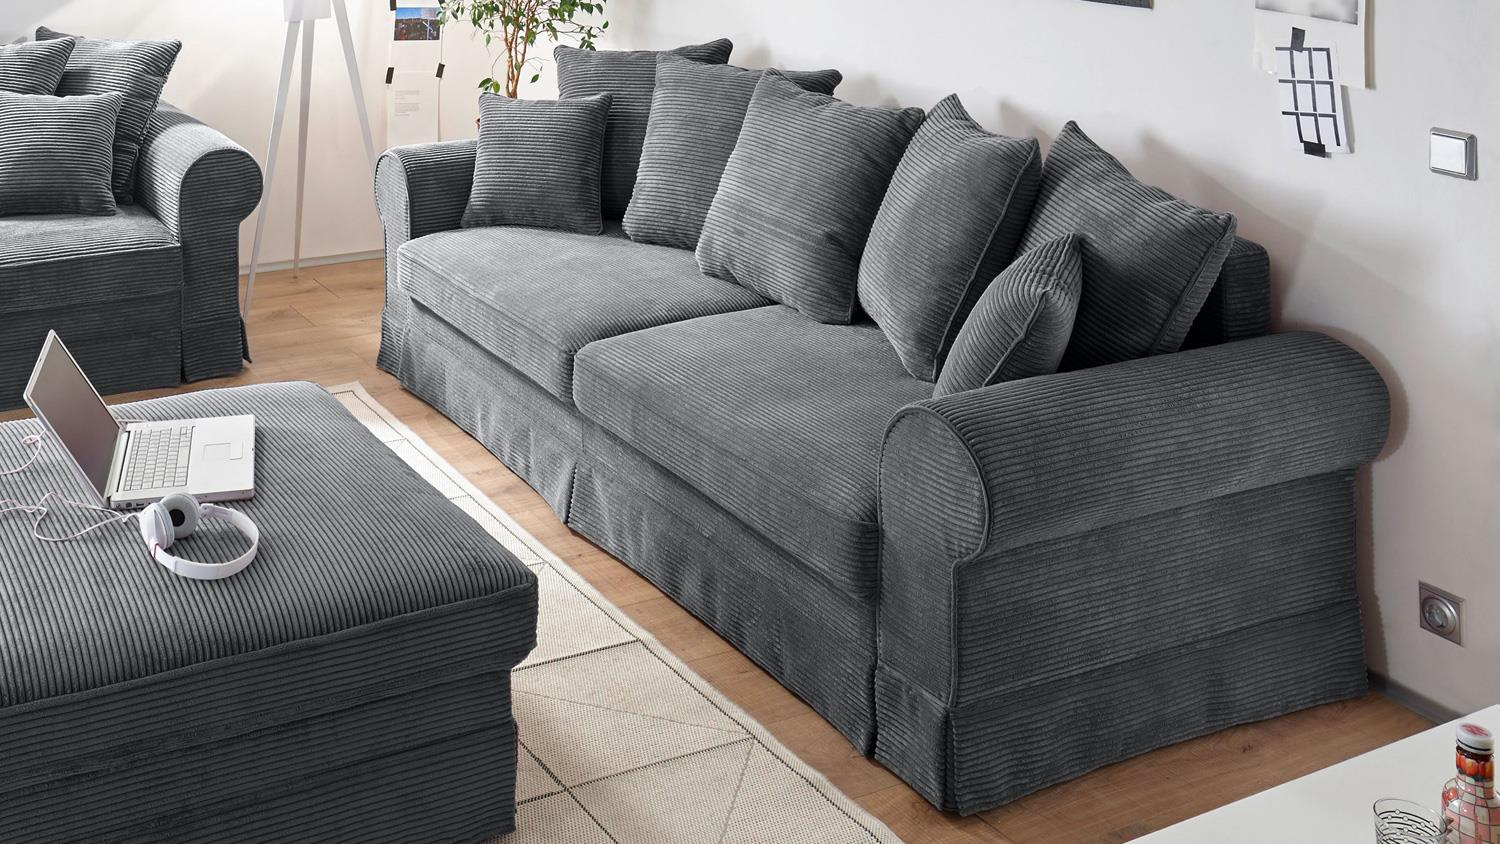 Sofa garnitur yankee stoff anthrazit inkl schlaffunktion for Sofa garnitur